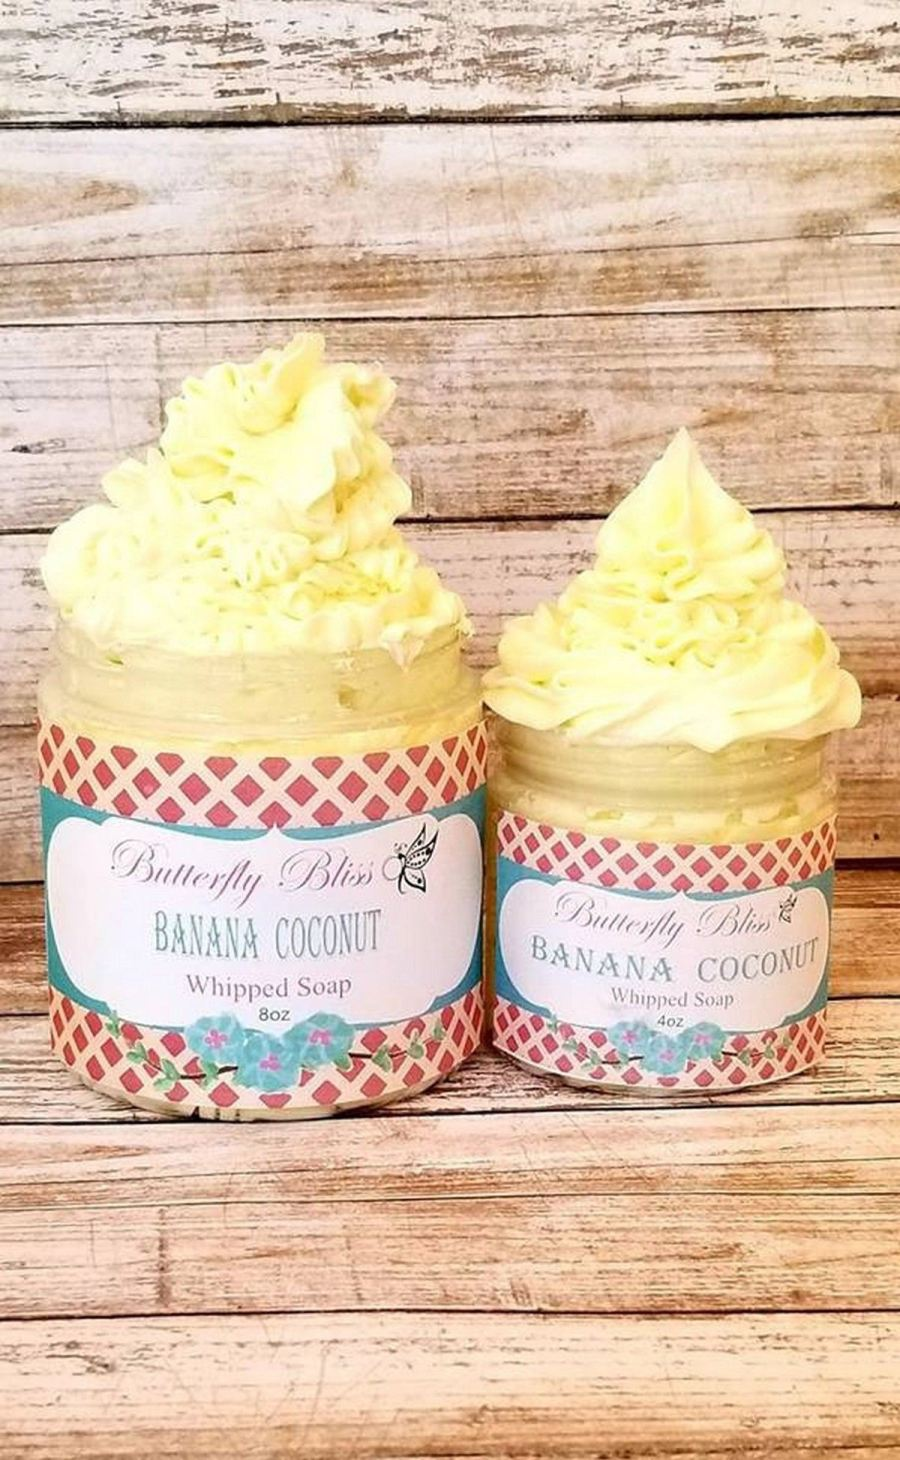 Sugar scrubs are a wonderful way to take care of your skin and relax while doing so. Take a look at these sugar scrubs and treat yourself!